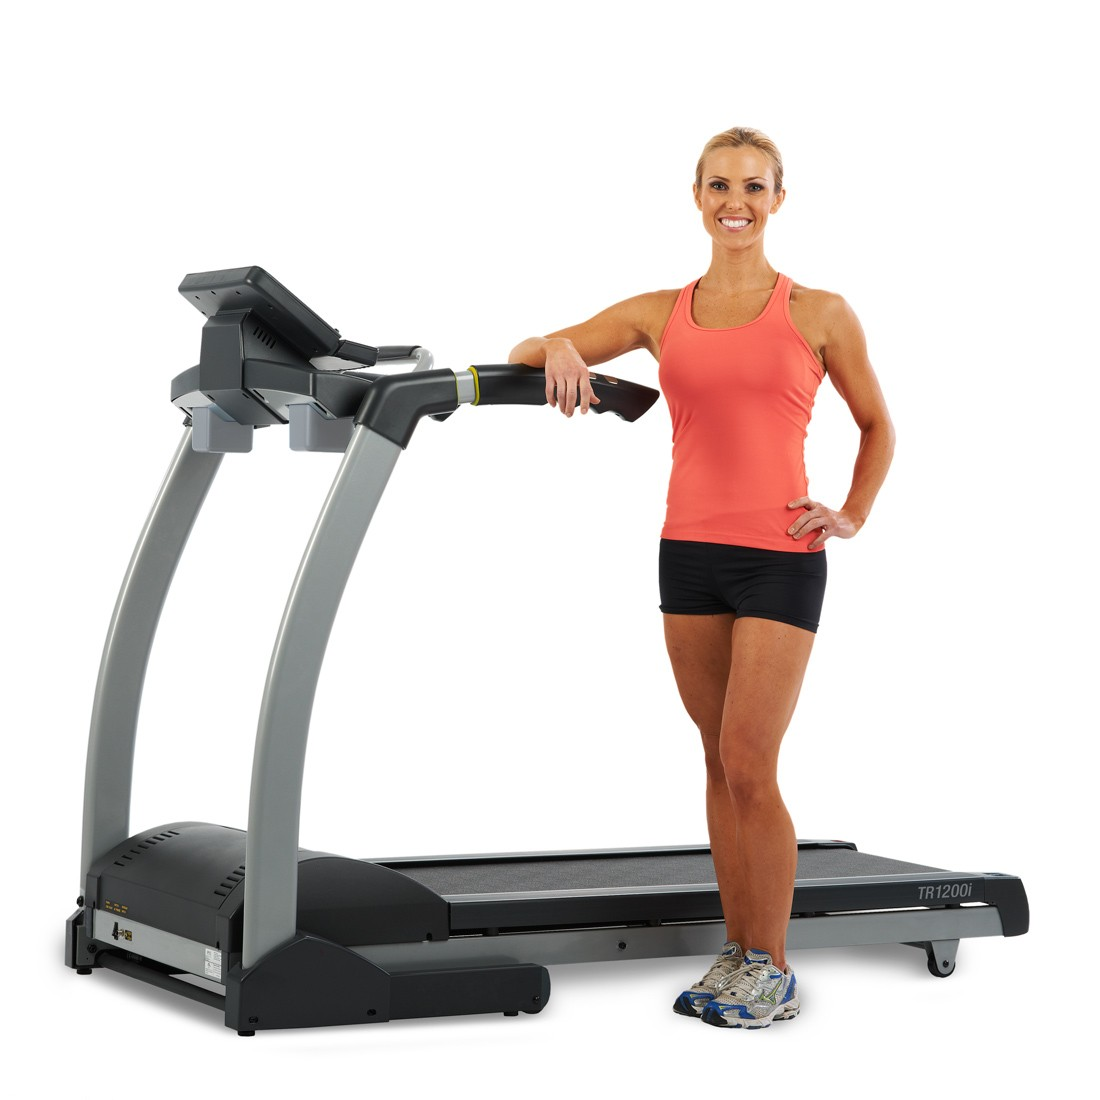 Life Fitness Treadmill Operation Manual: Best Under $1000 Treadmill: LifeSpan TR1200i Review